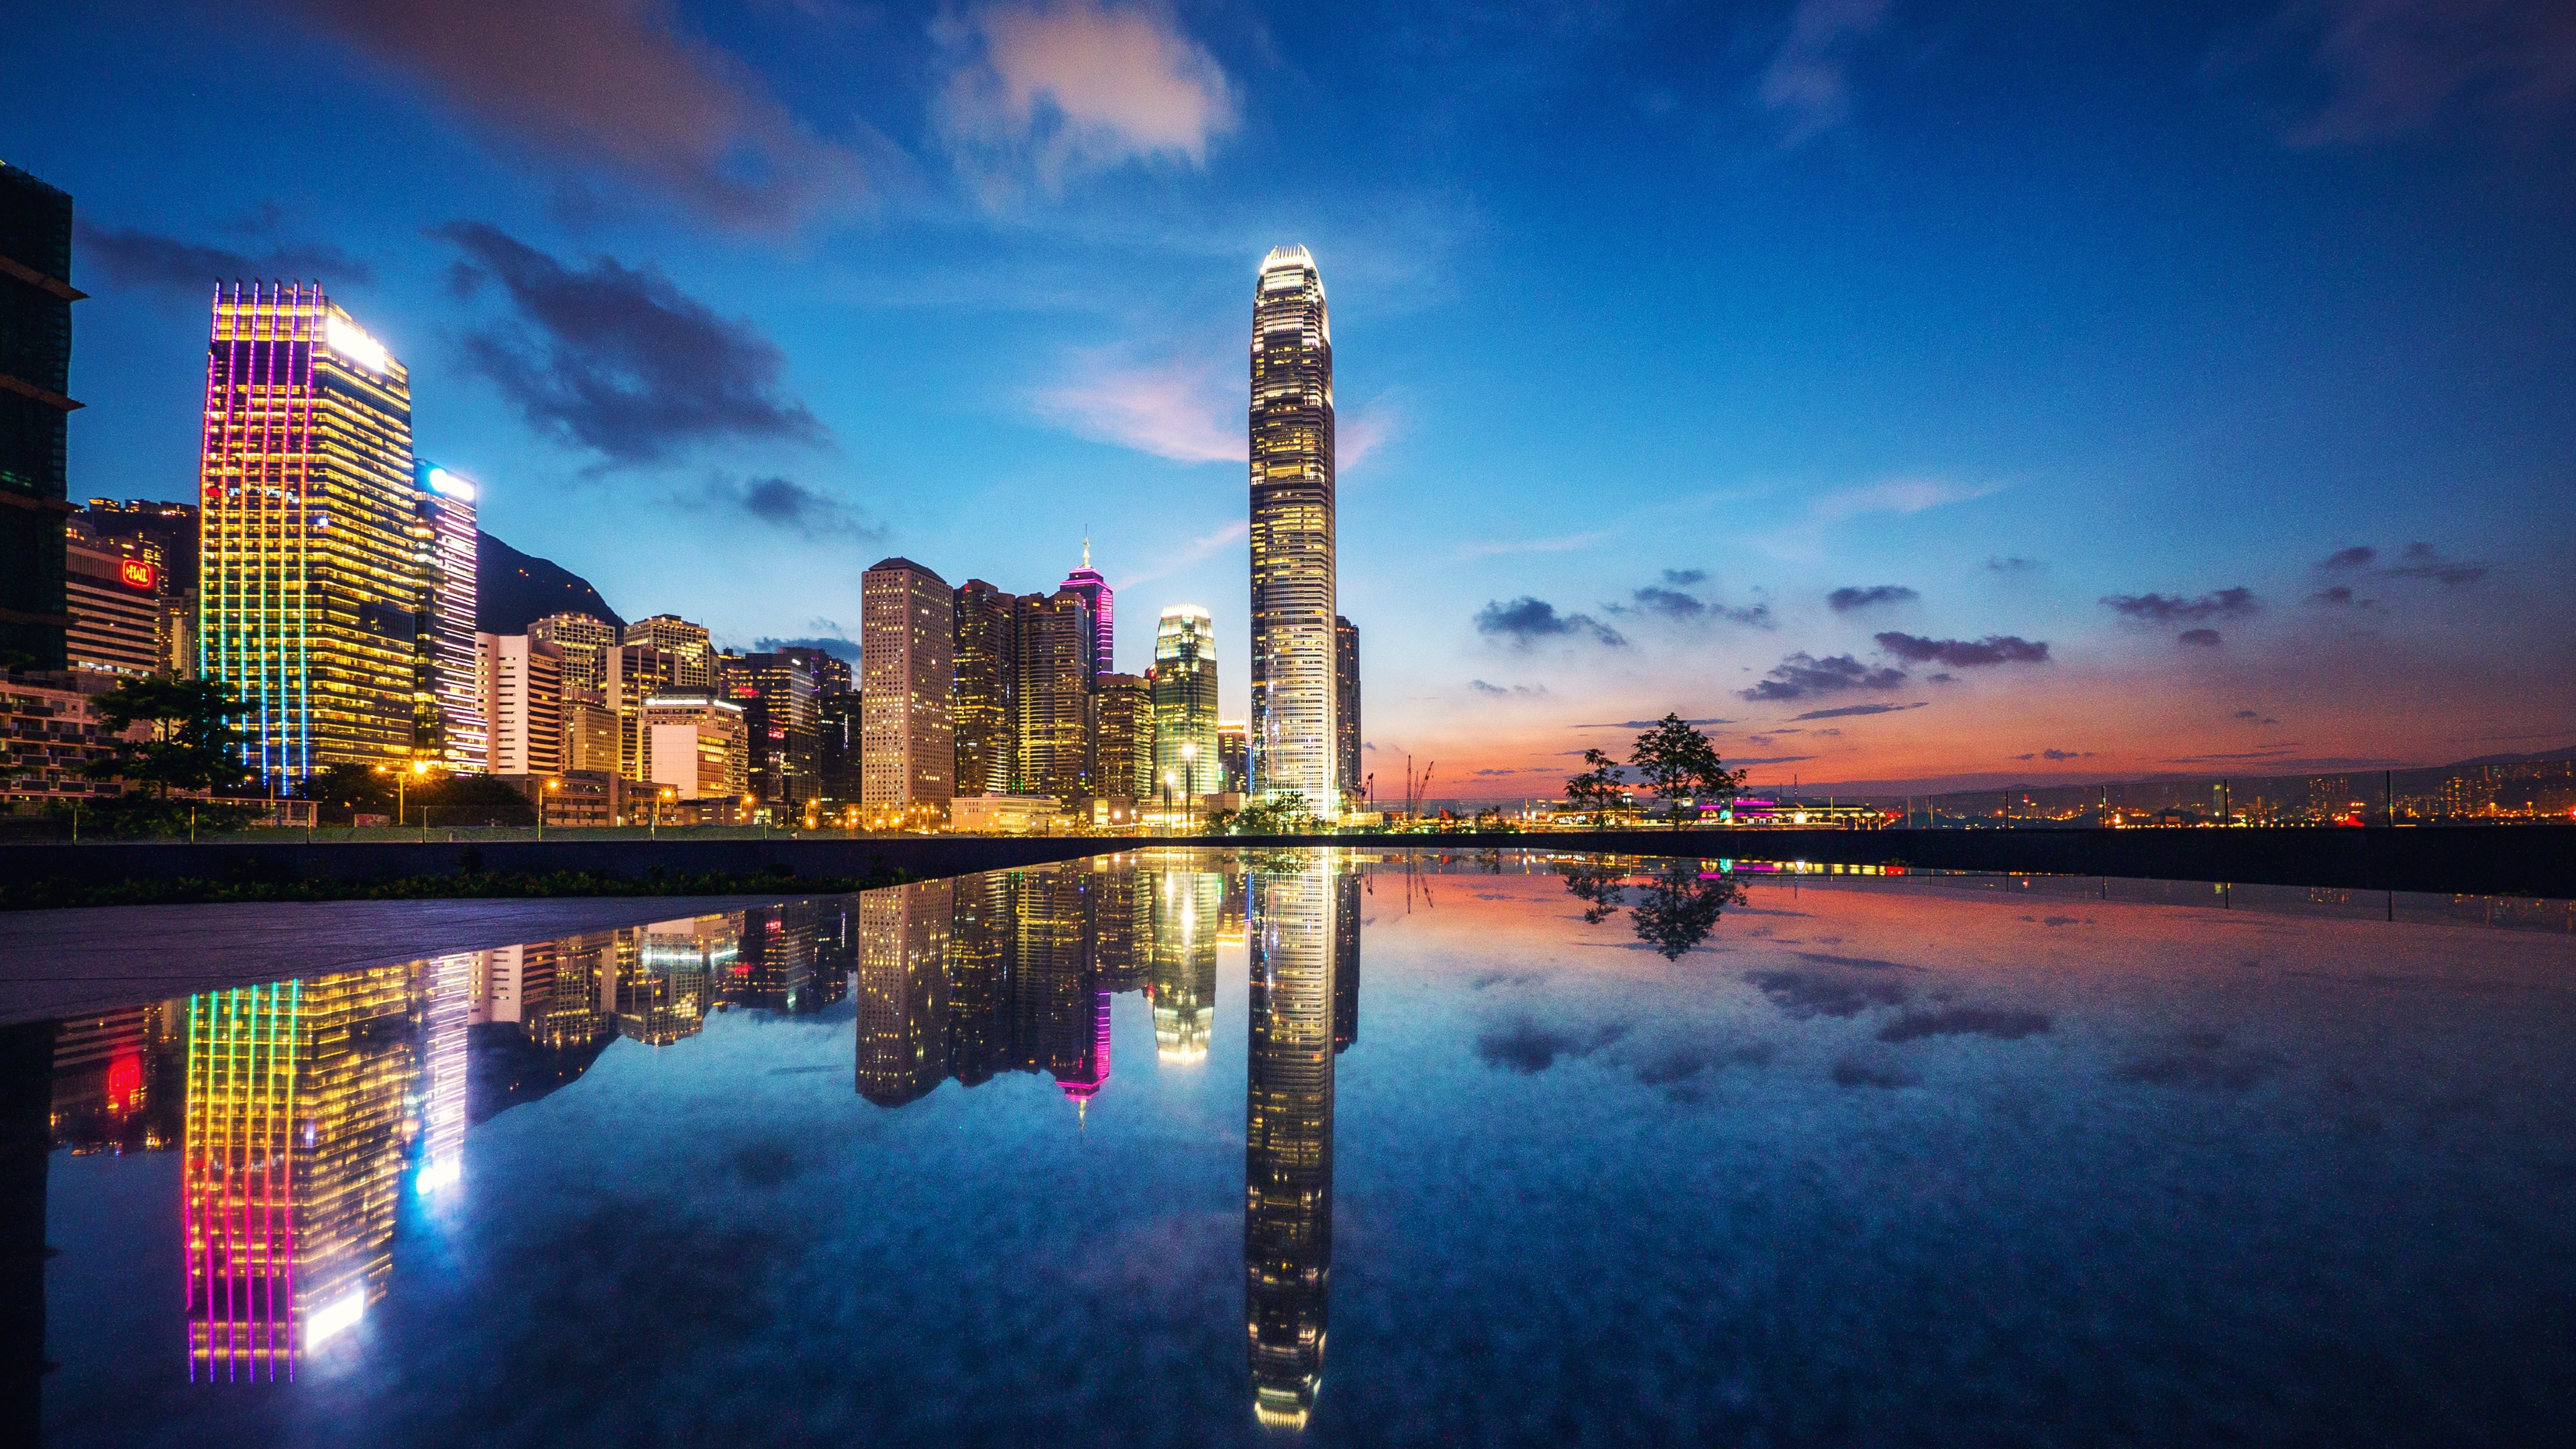 4k-ultra-hd-wallpaper-Hong-Kong-unabuenaidea.es (12)